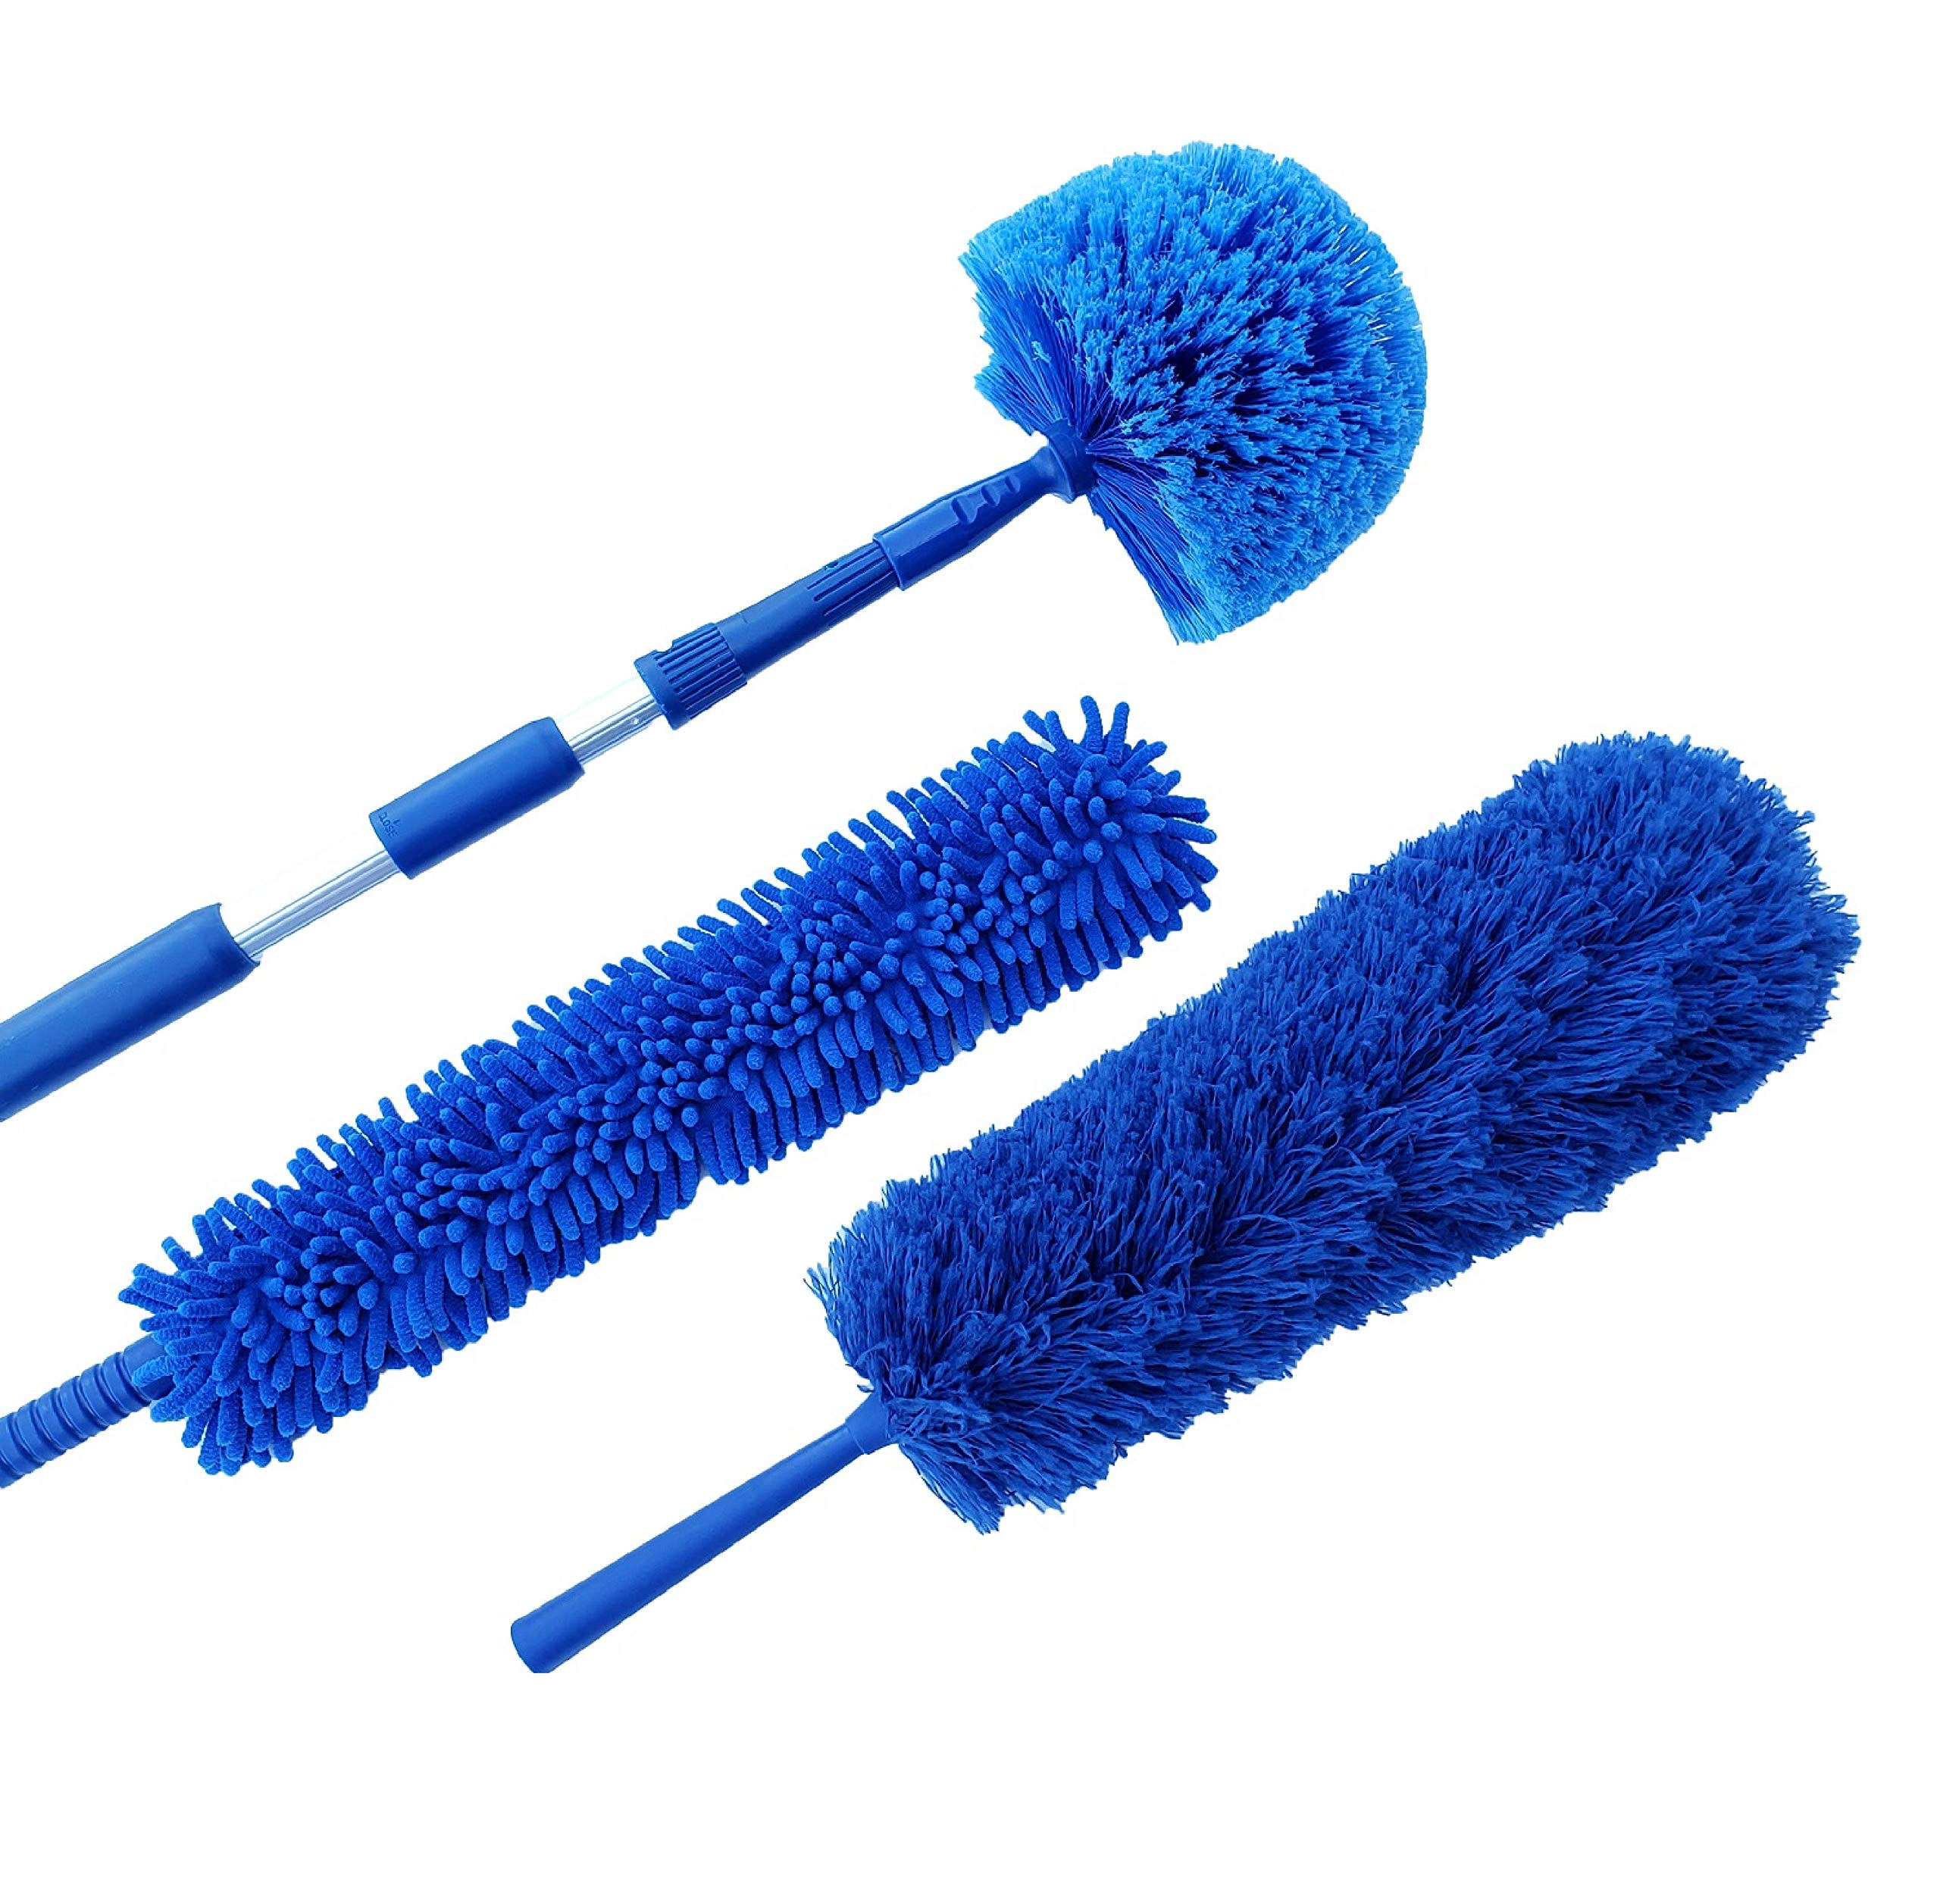 U.S. Duster Company Triple Action Microfiber Duster Set, Aluminum Extension Rod, Blue Micro Duster, Cobweb Duster, Plus Chenille Duster, Extend 18-20 feet Cleaning High Ceilings, Cathedral Ceilings